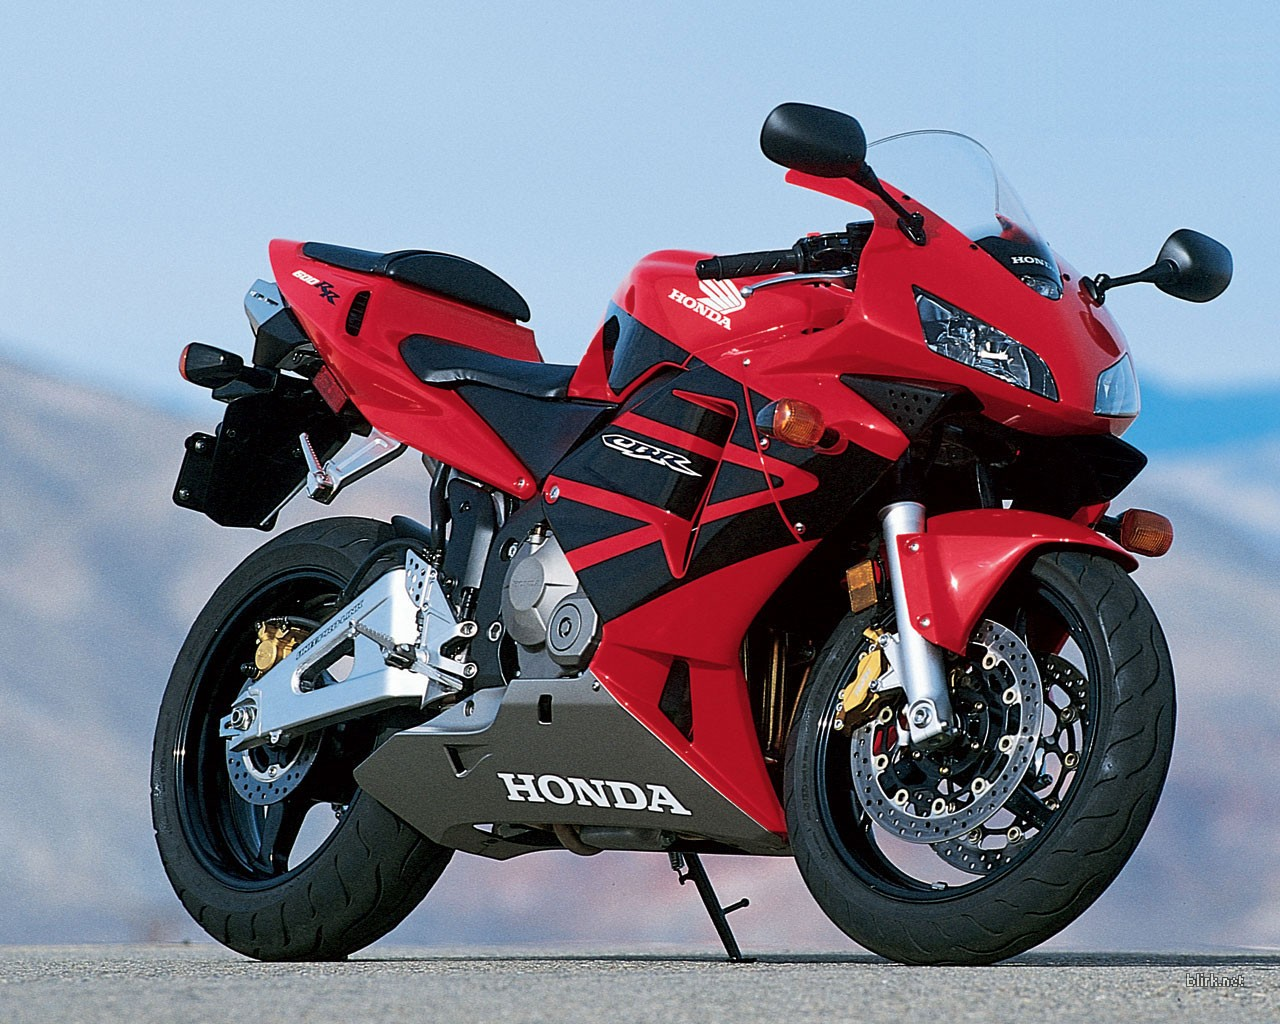 Honda Motorcycle Accessories Cbr 600 Motorcycles Information Reviews Amazing Rr 2013 Cbr600rr Supersport Comparison Arms Its With Updated Suspension Components In Hopes